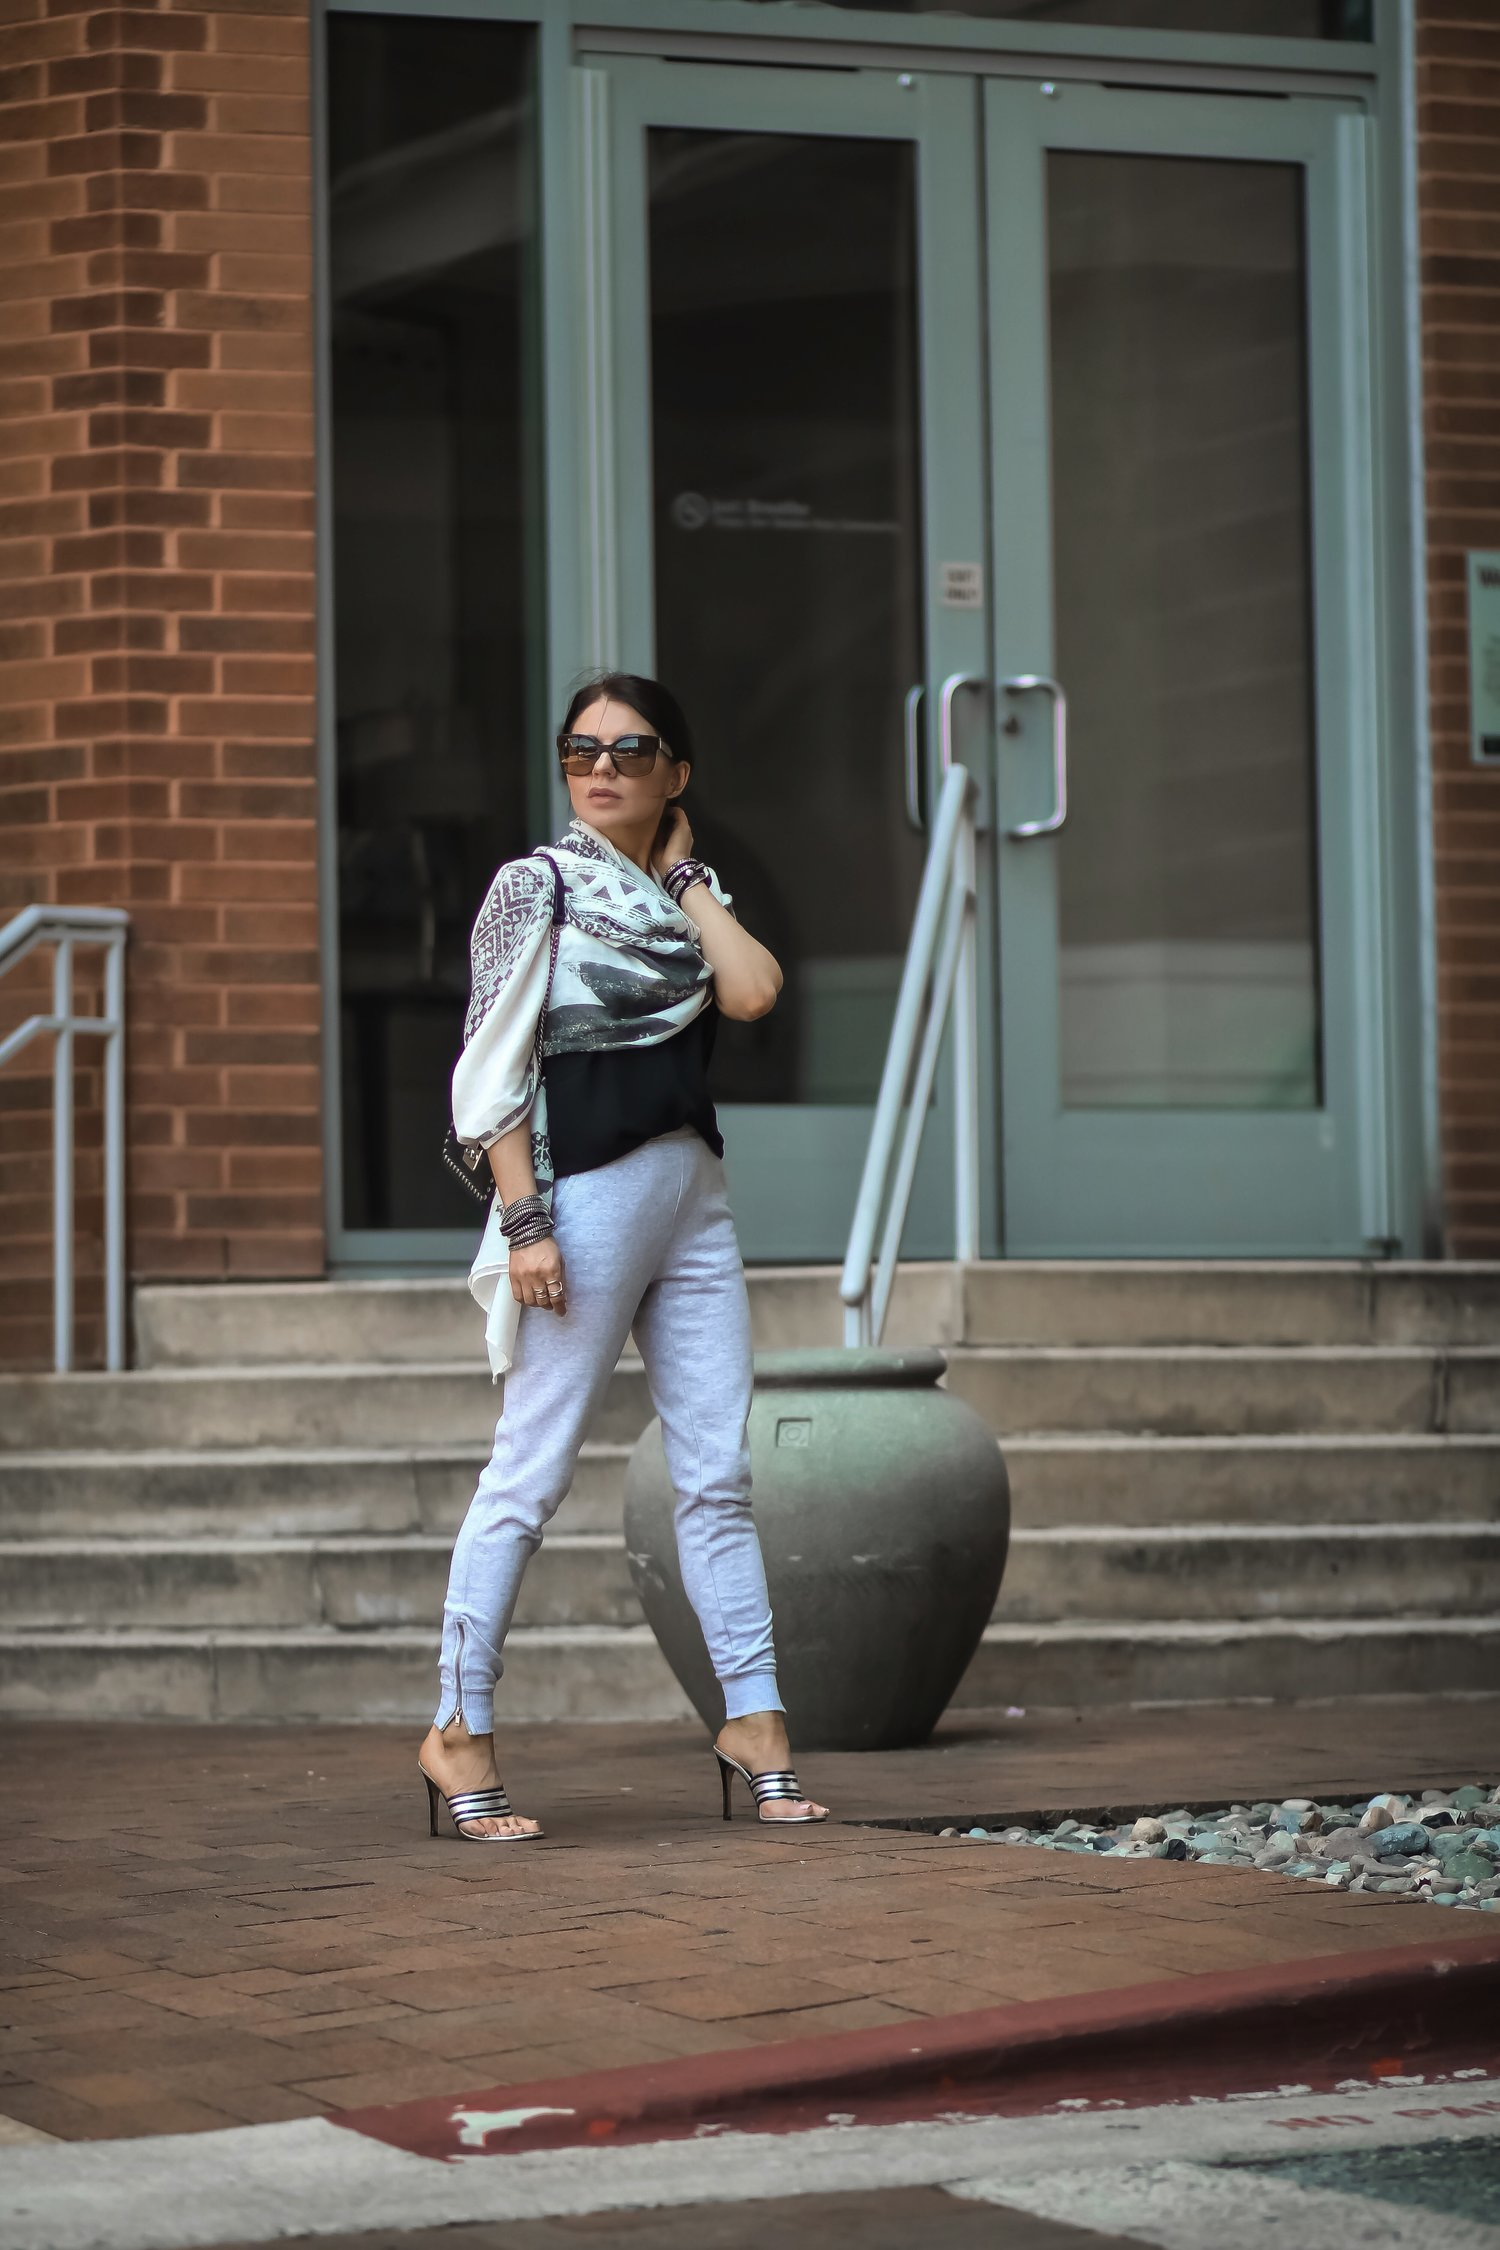 Isabel-Alexander-Aerie-light-grey-joggers-scarf-Gina-shoes-blogger-style